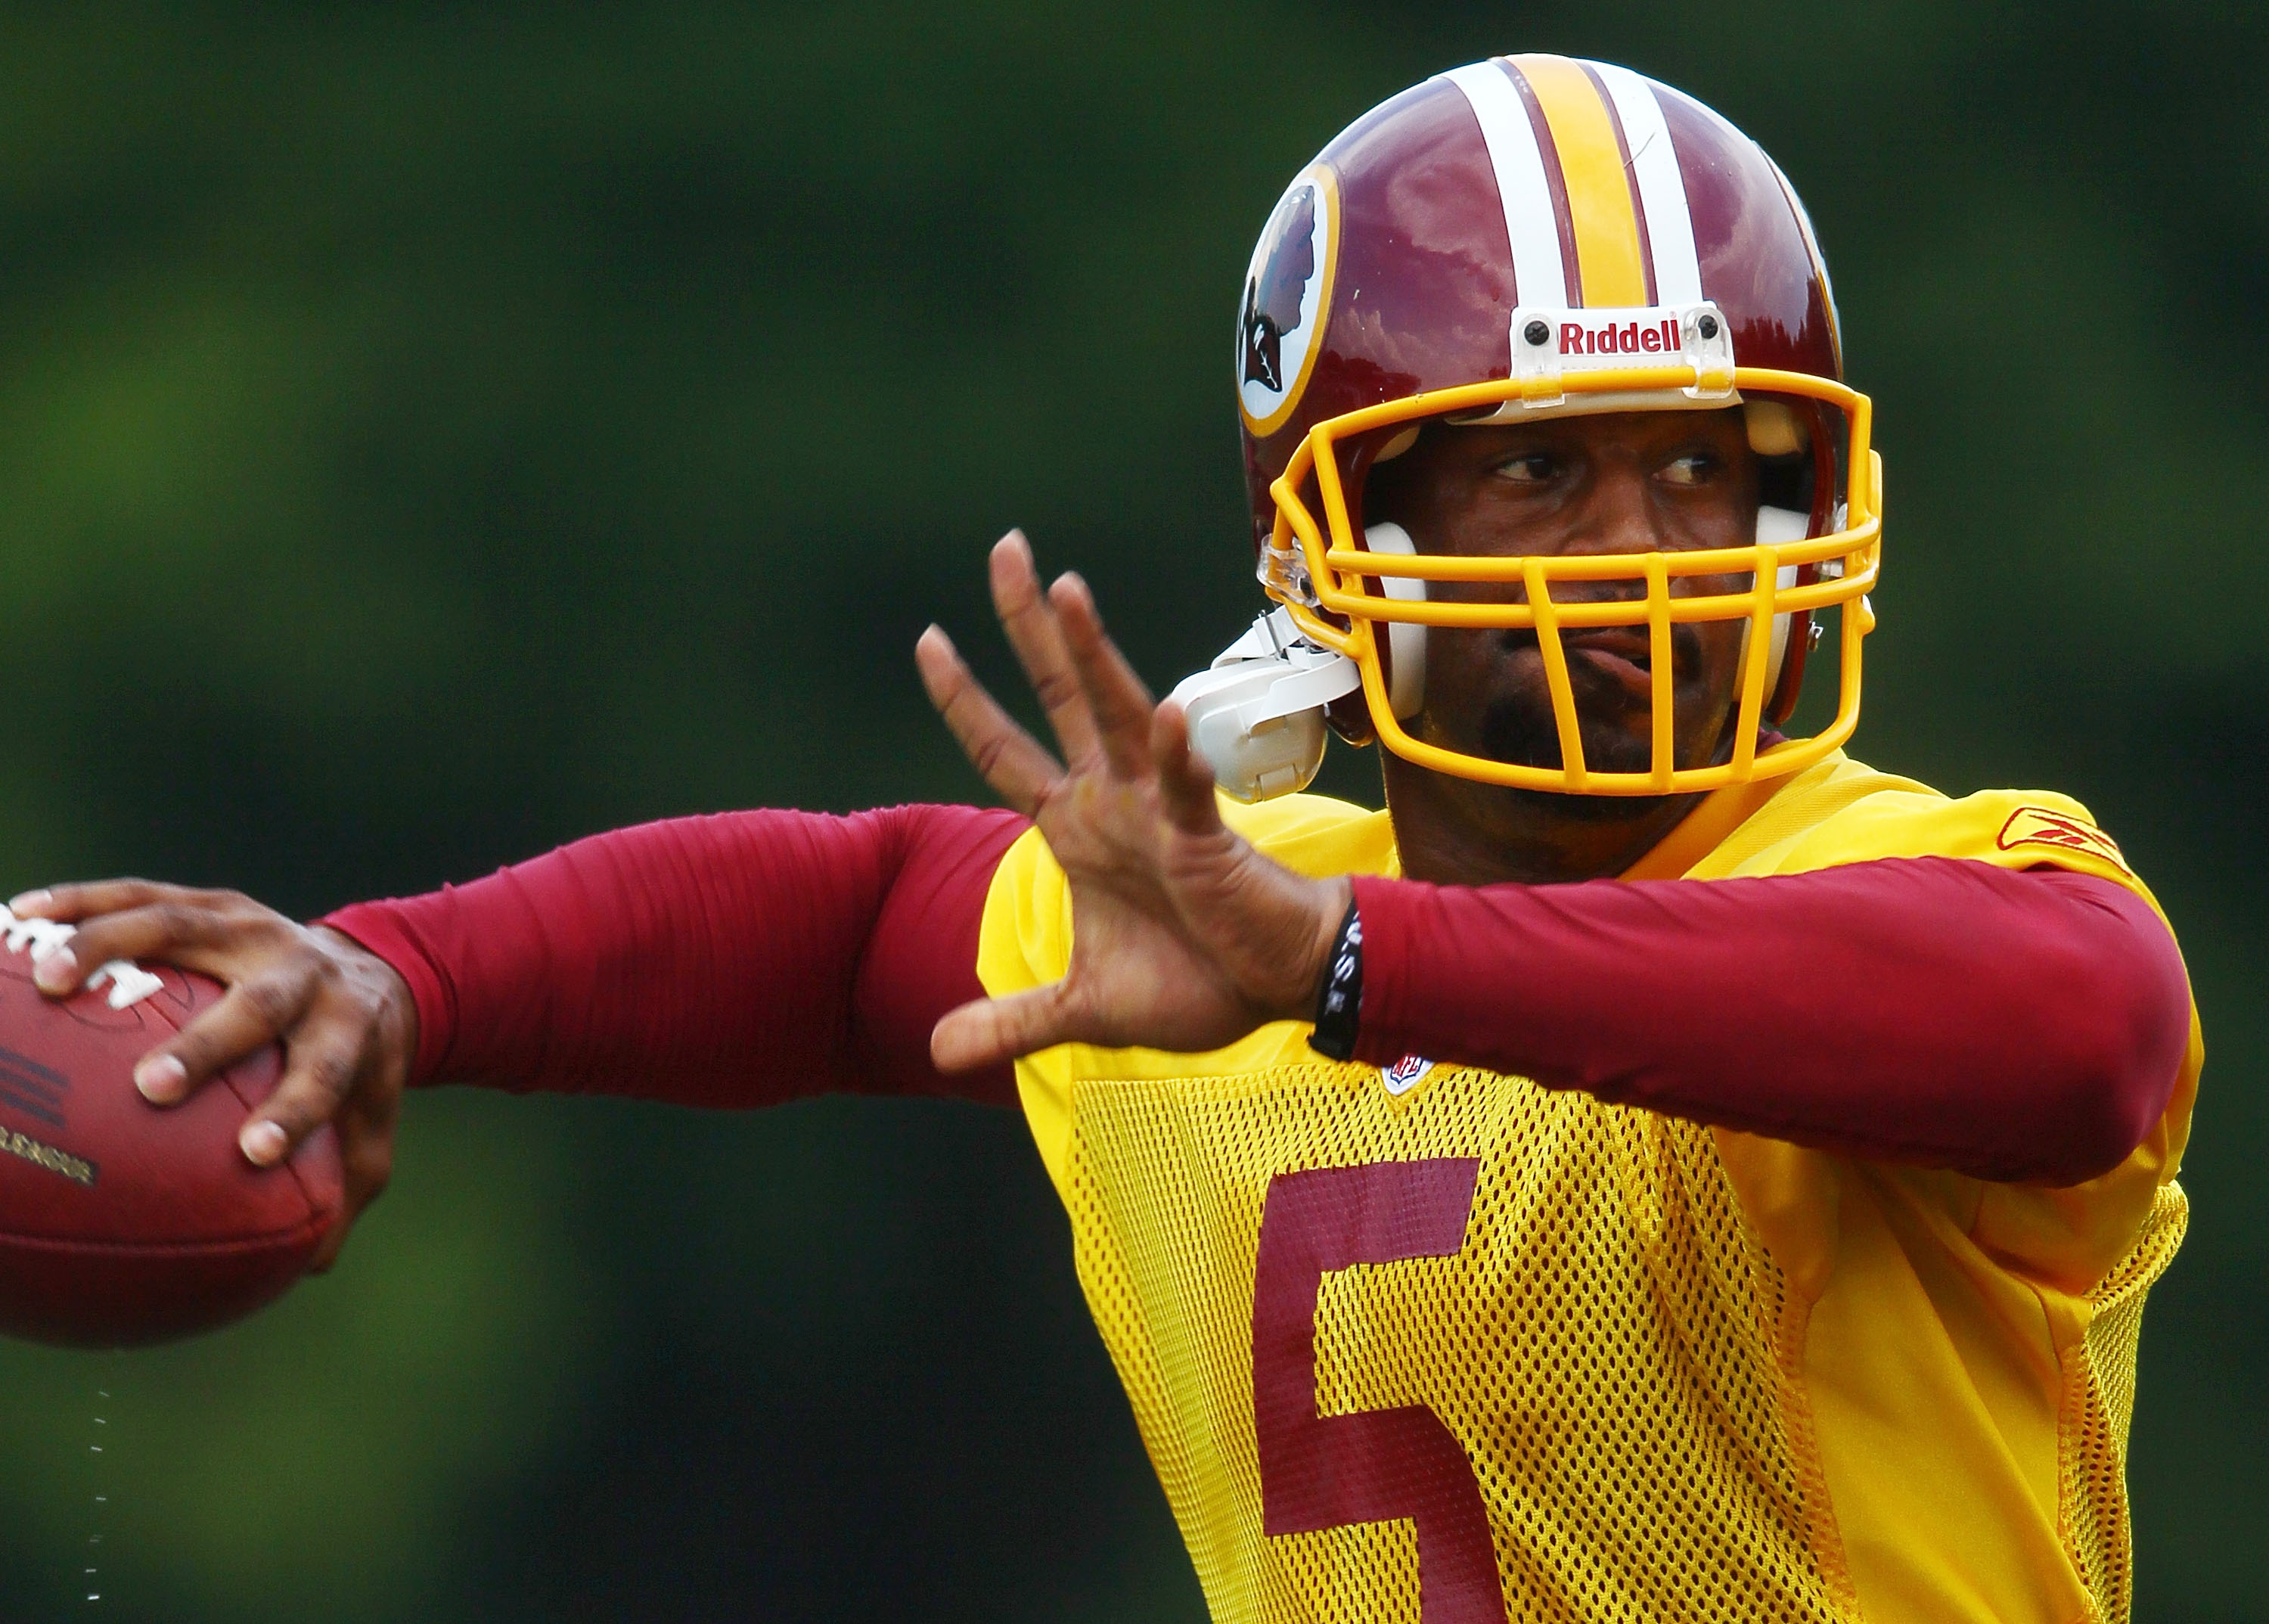 ASHBURN, VA - JULY 29:  Quarterback Donovan McNabb #5 of the Washington Redskins throws a pass during drills on the first day of training camp July 29, 2010 in Ashburn, Virginia.  (Photo by Win McNamee/Getty Images)